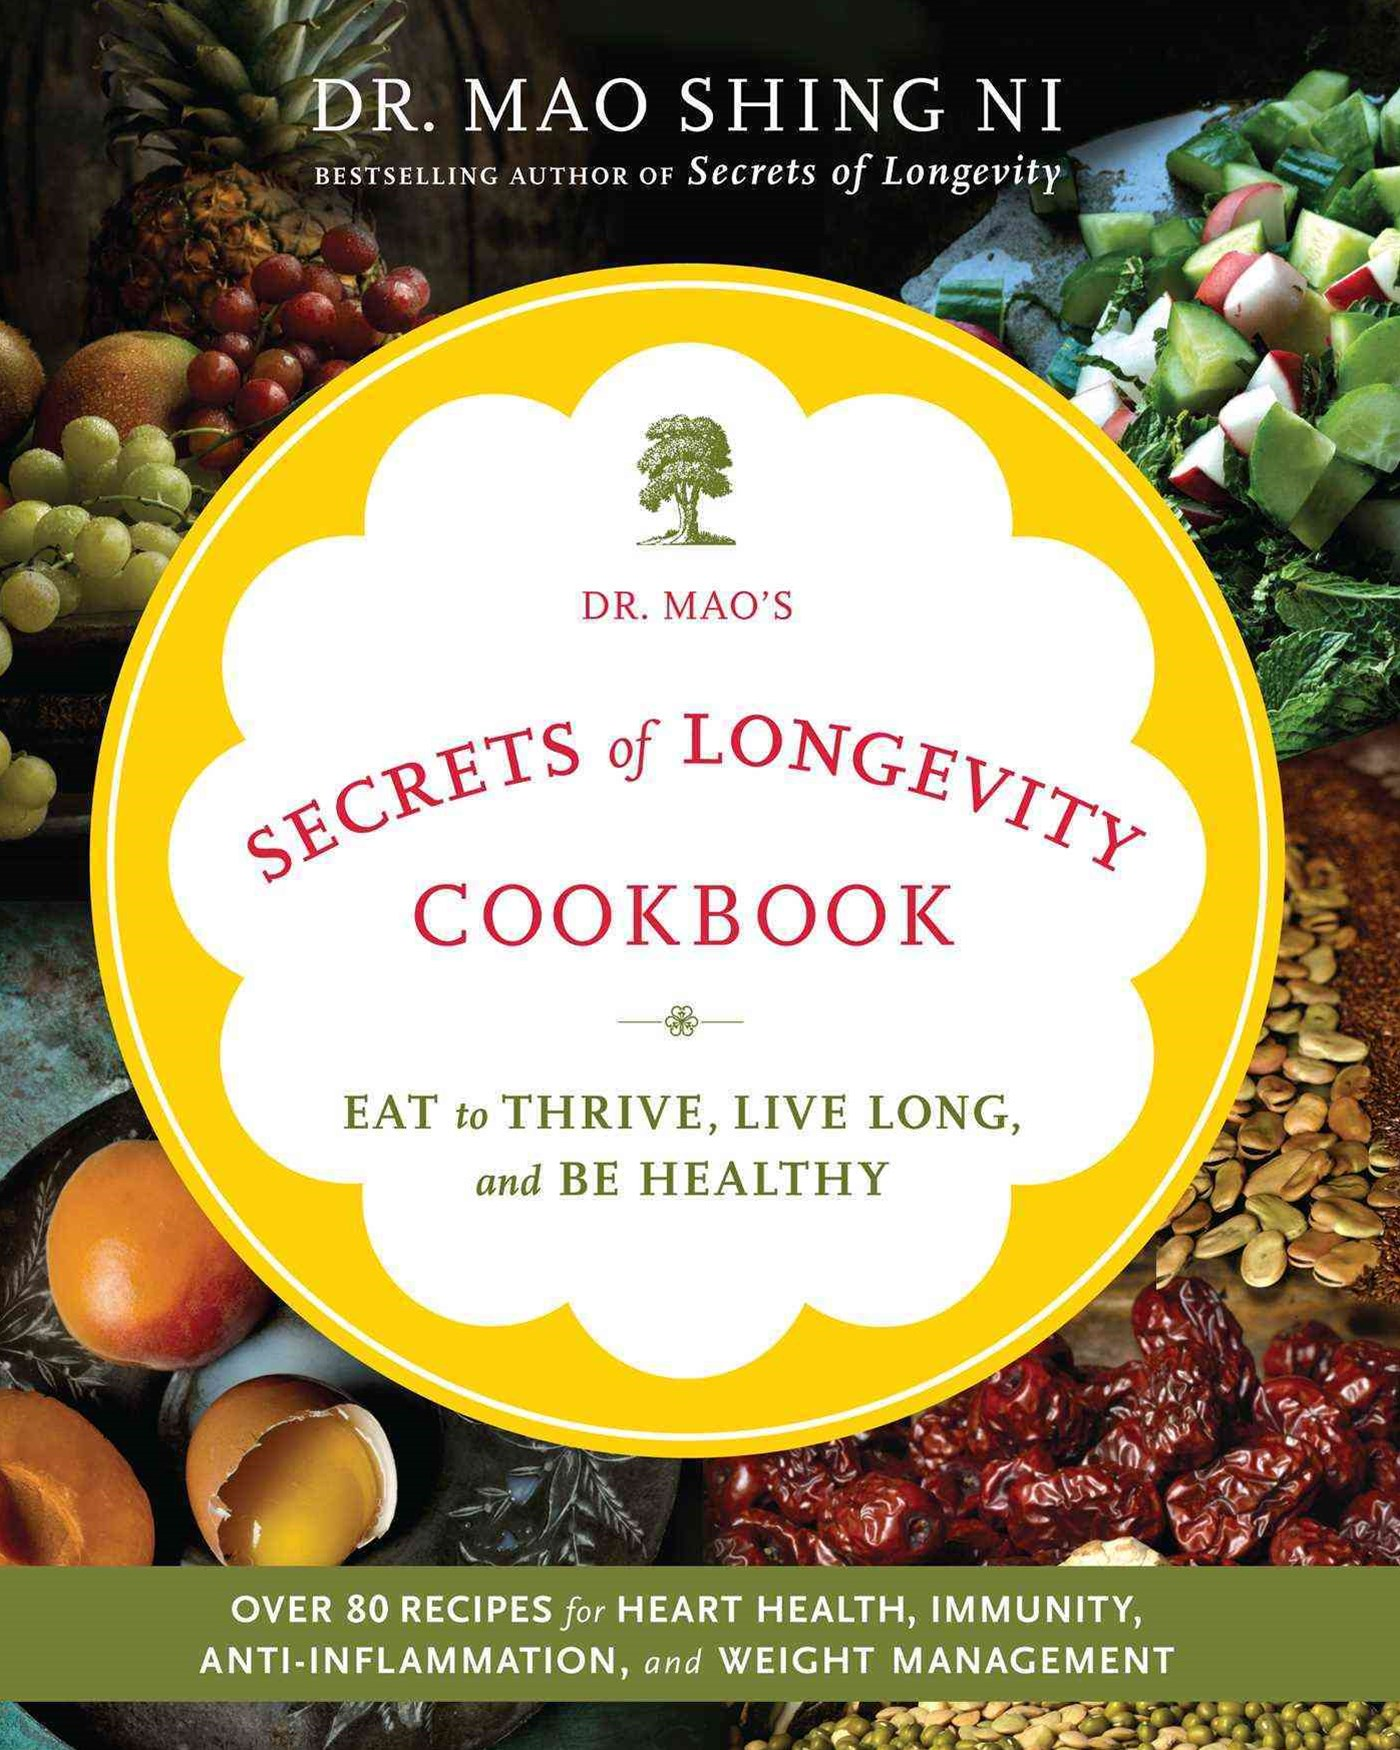 Secrets of Longevity Cookbook